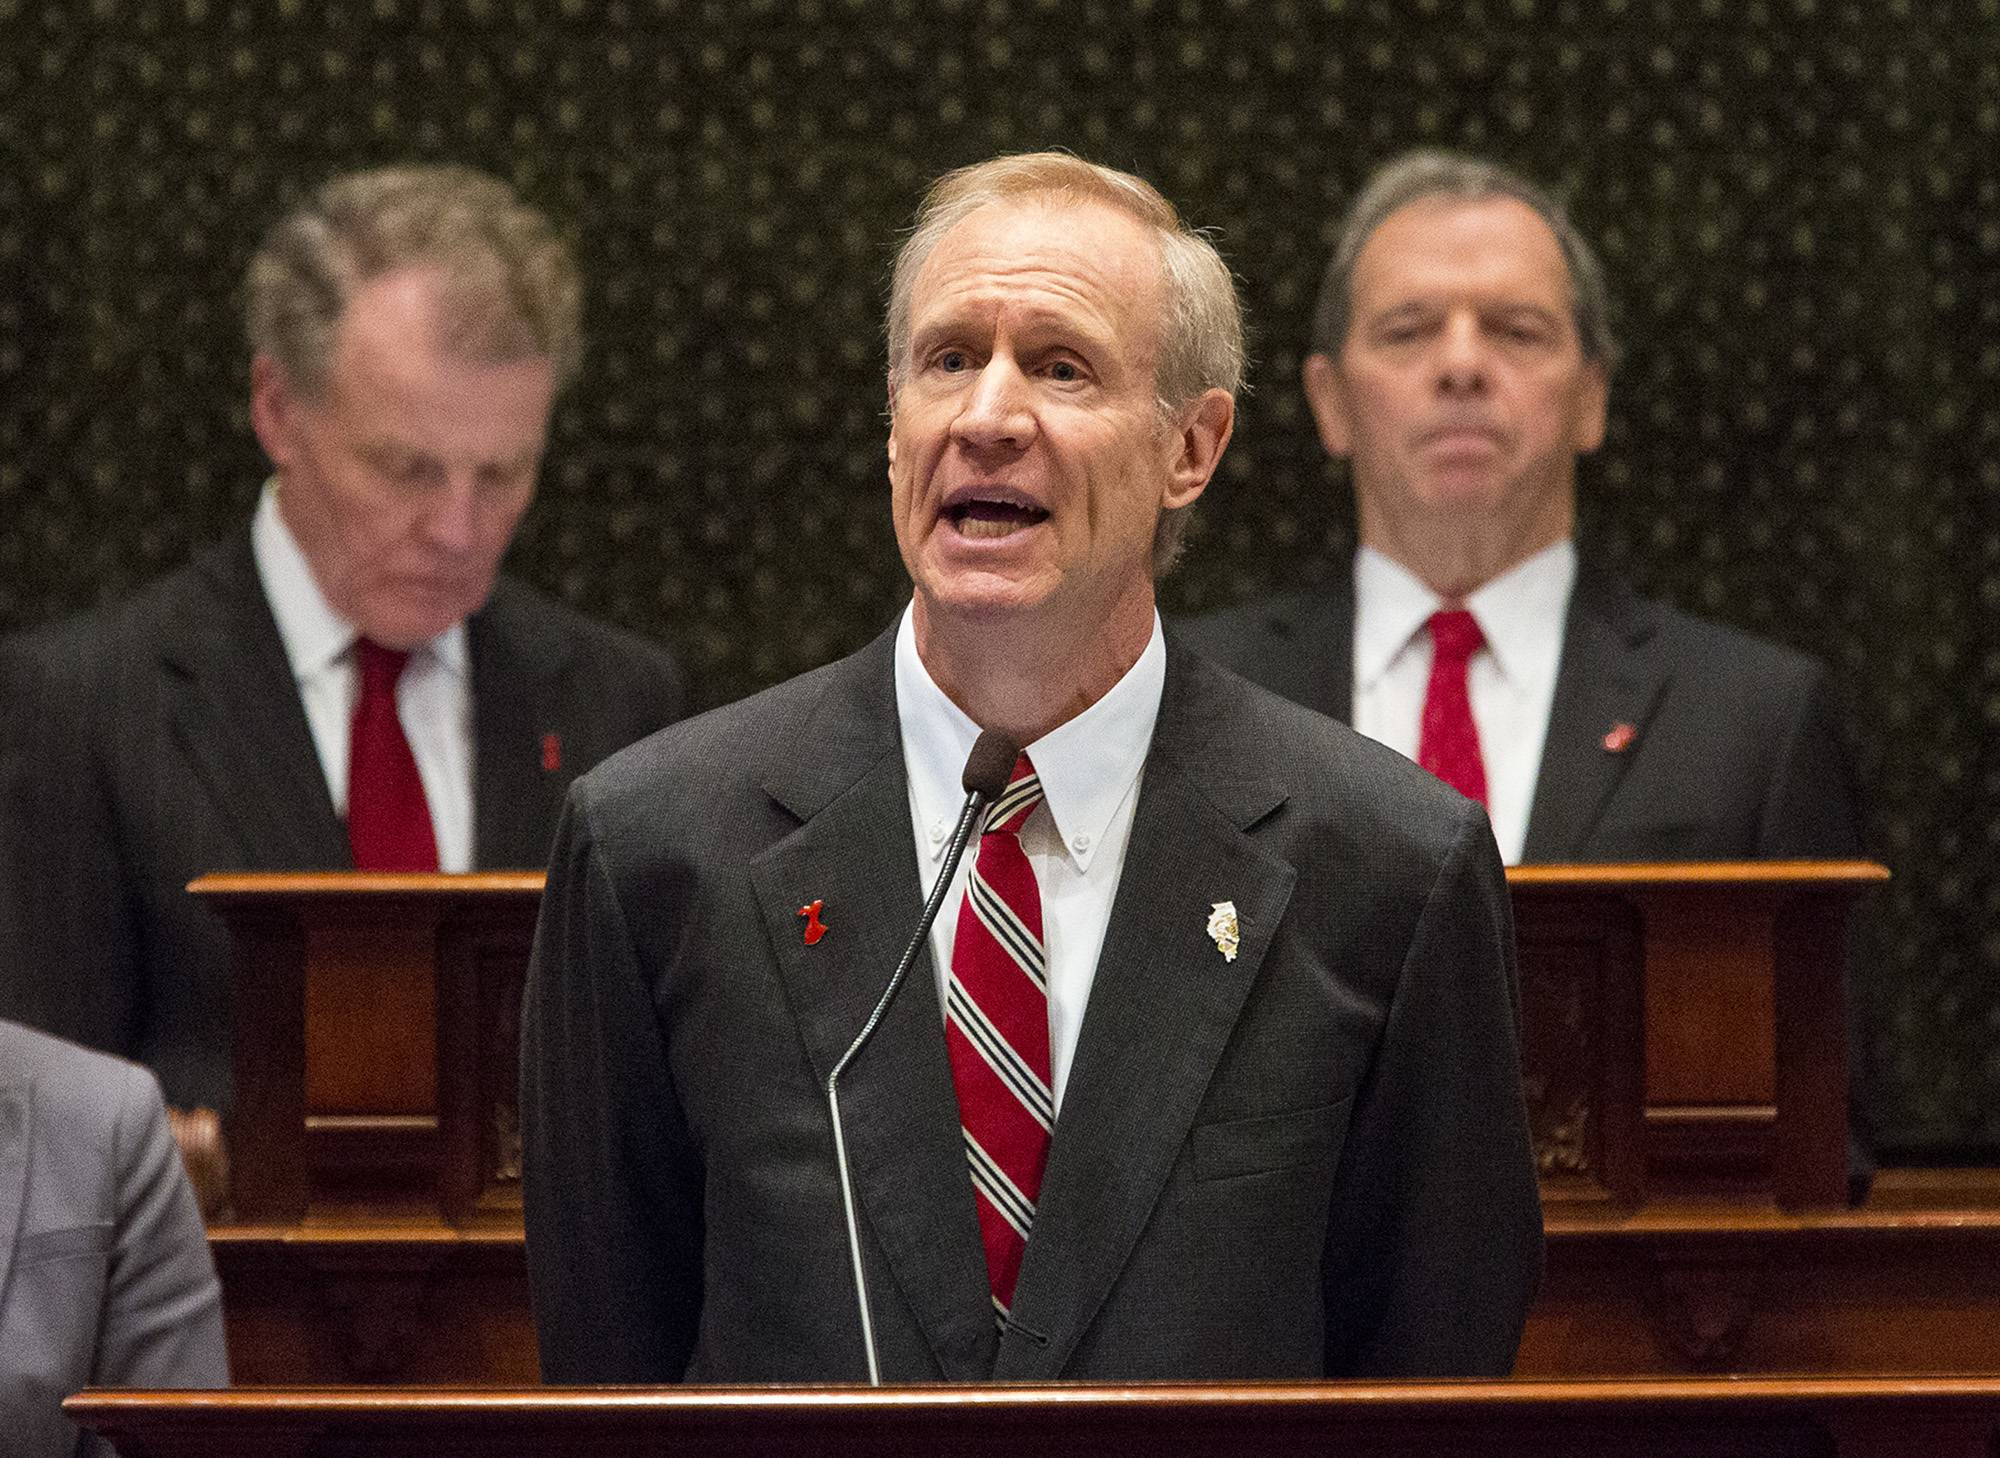 House Speaker Michael Madigan, left, and Senate President John Cullerton listen as Illinois Gov. Bruce Rauner delivers his budget address to a joint session of the General Assembly at the Capitol last February.